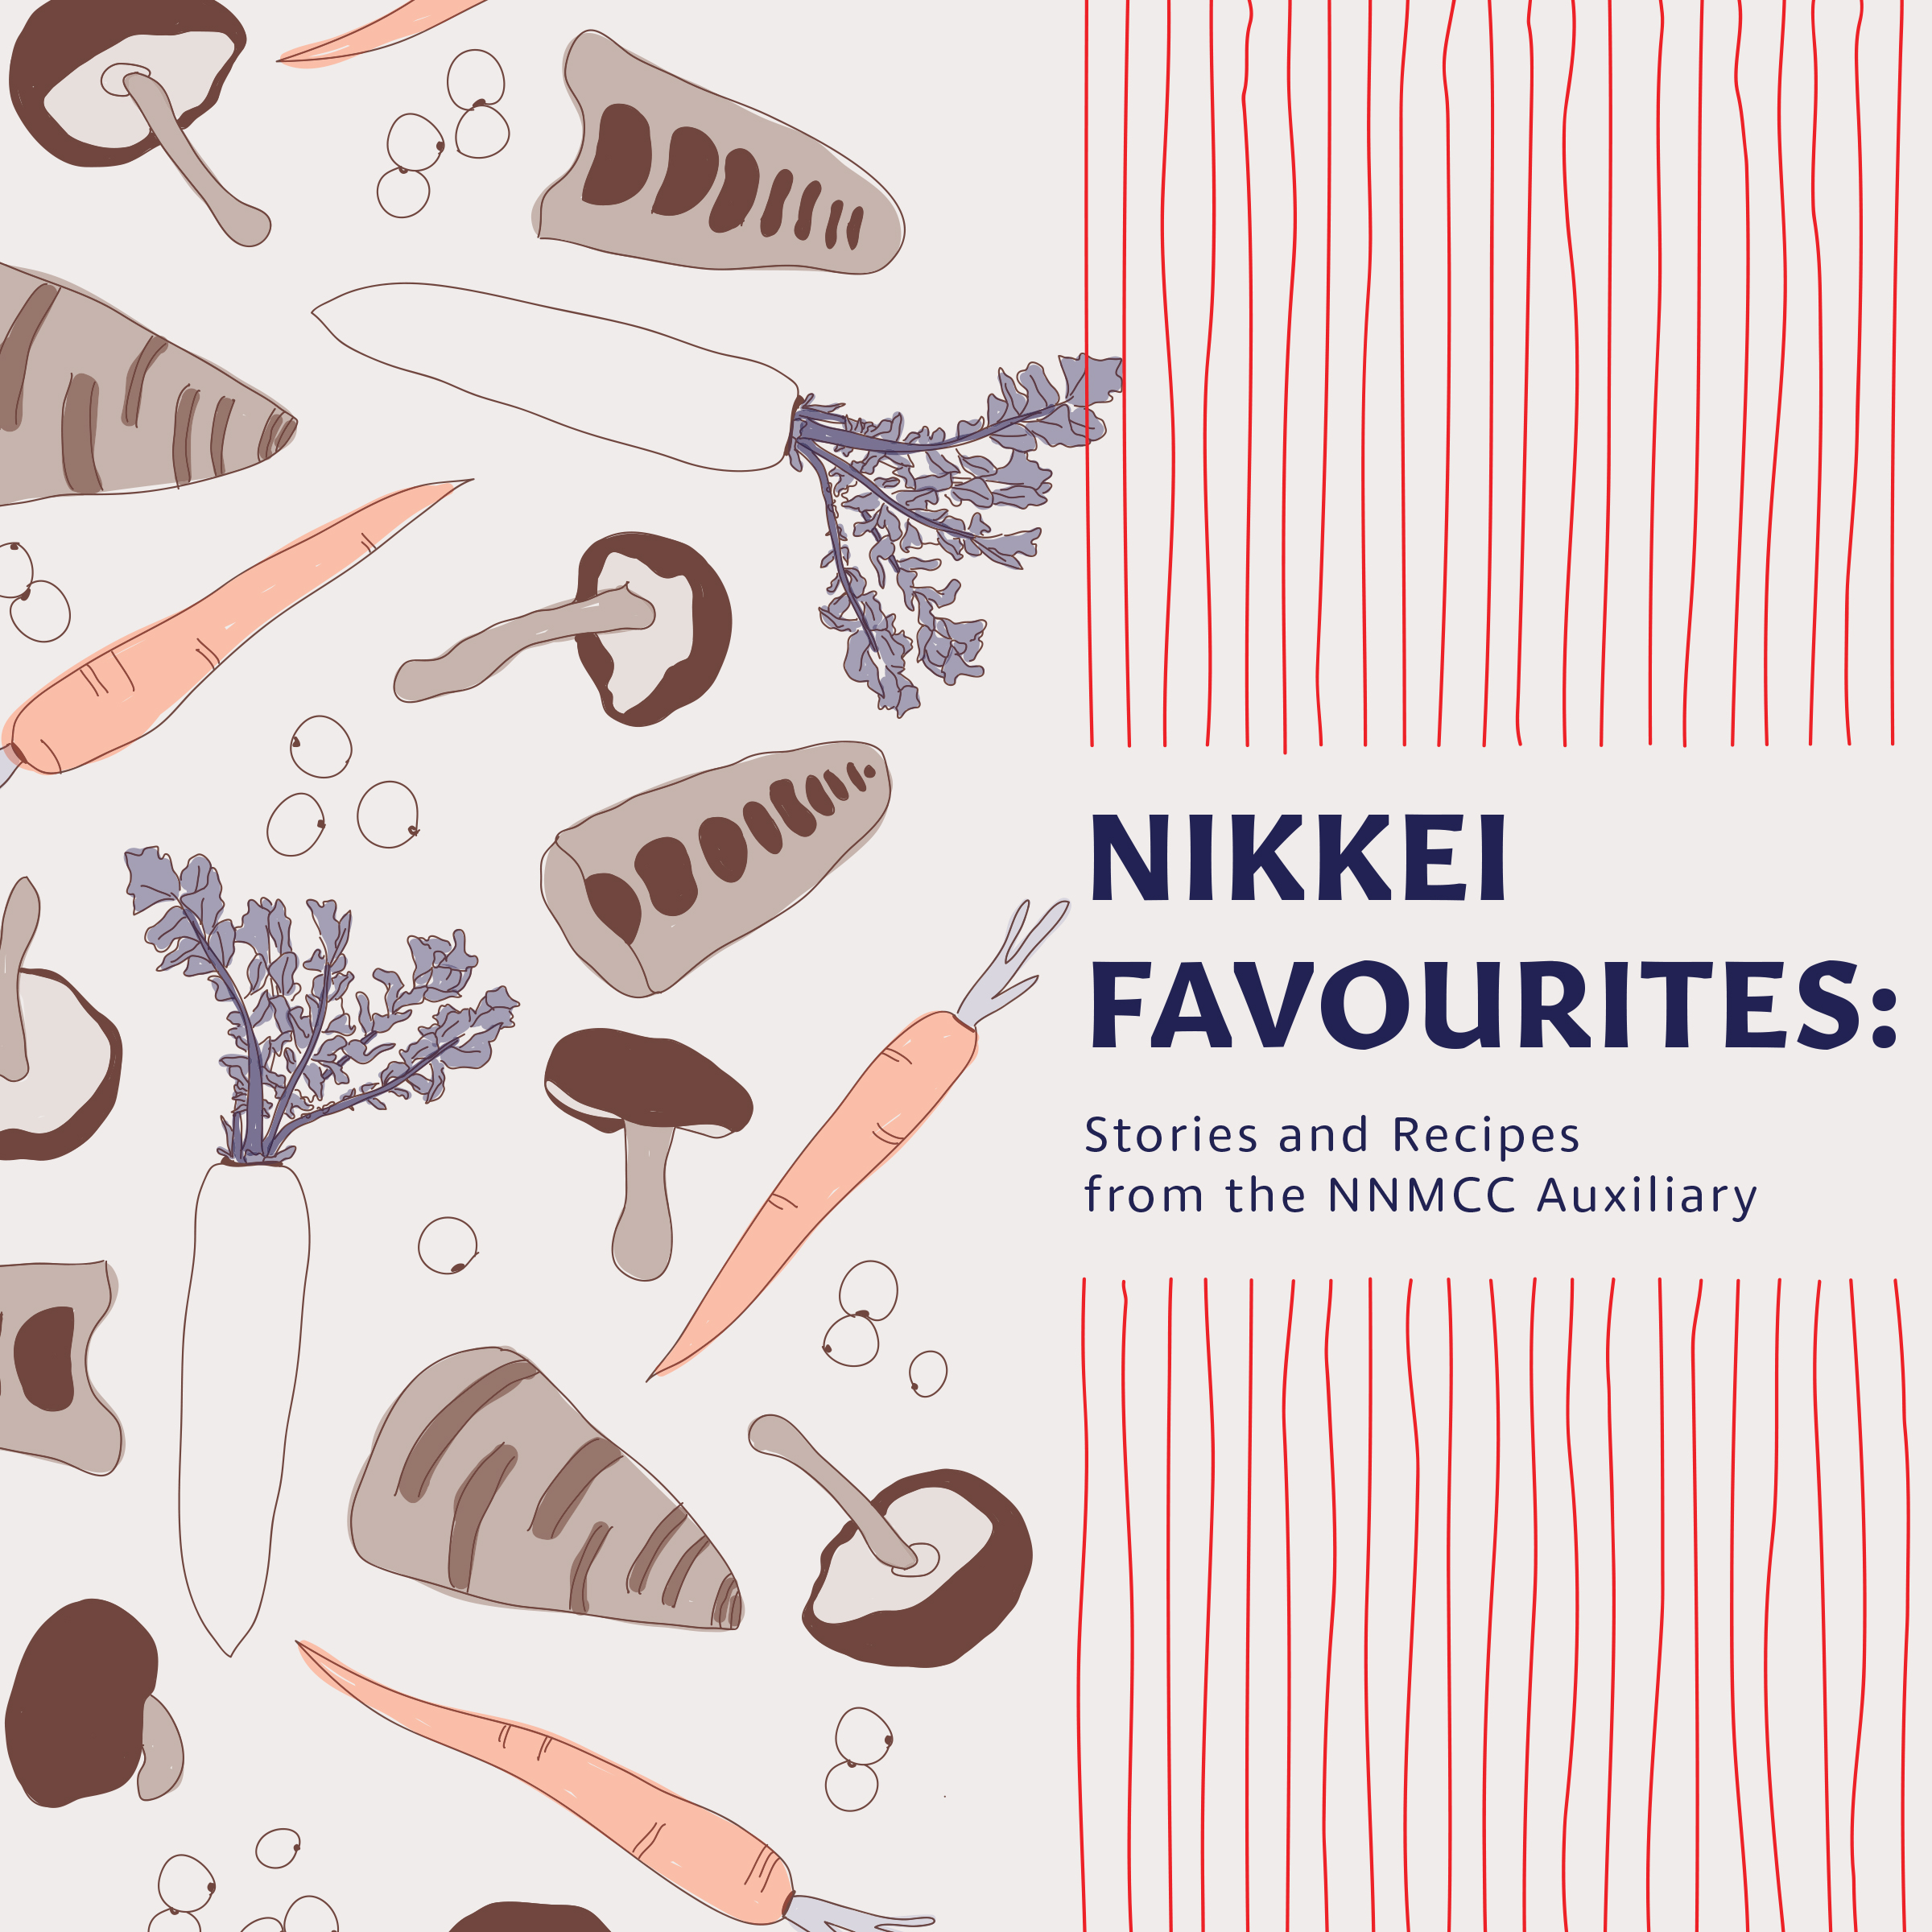 Nikkei Favourites: Stories and Recipes from the NNMCC Auxiliary